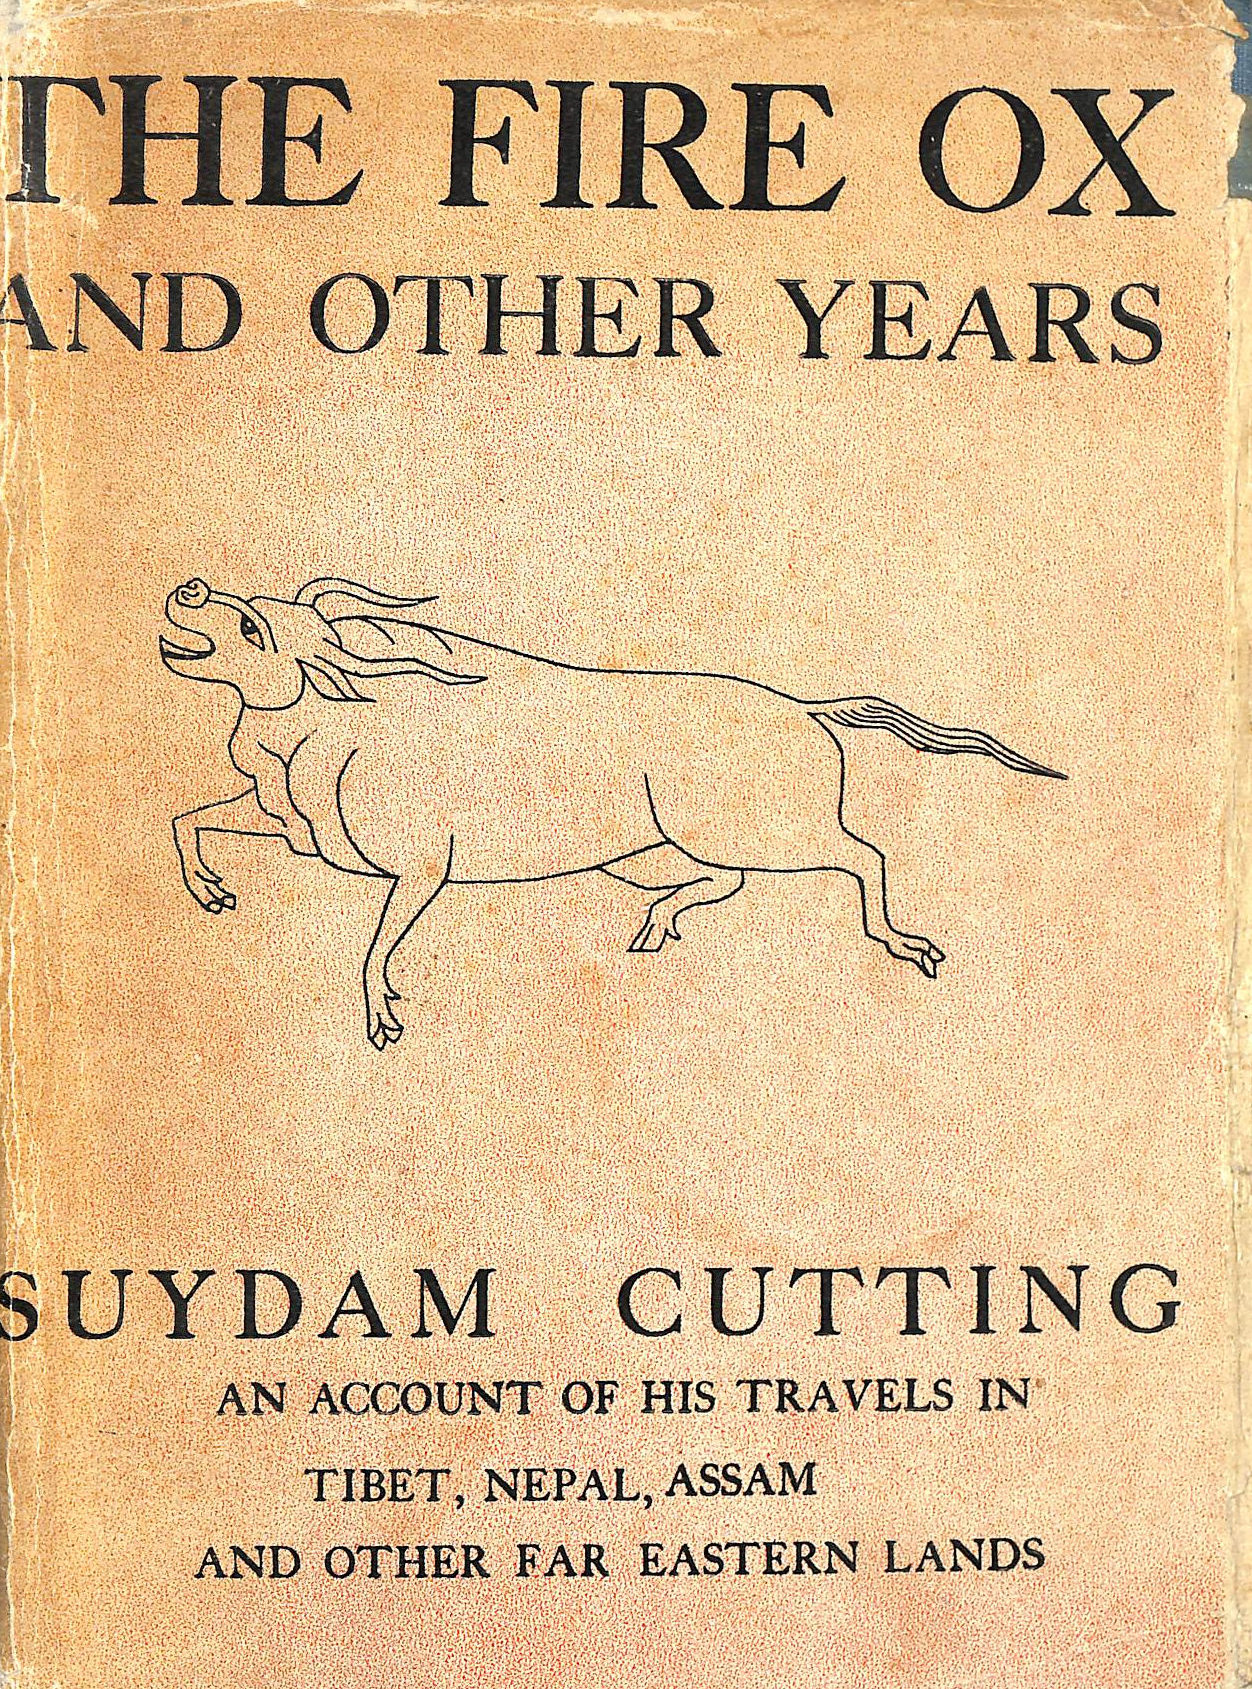 Image for The Fire Ox And Other Years . Suydam Cutting An Account Of His Travels In Tibet, Assam And Other Far Eastern Lands